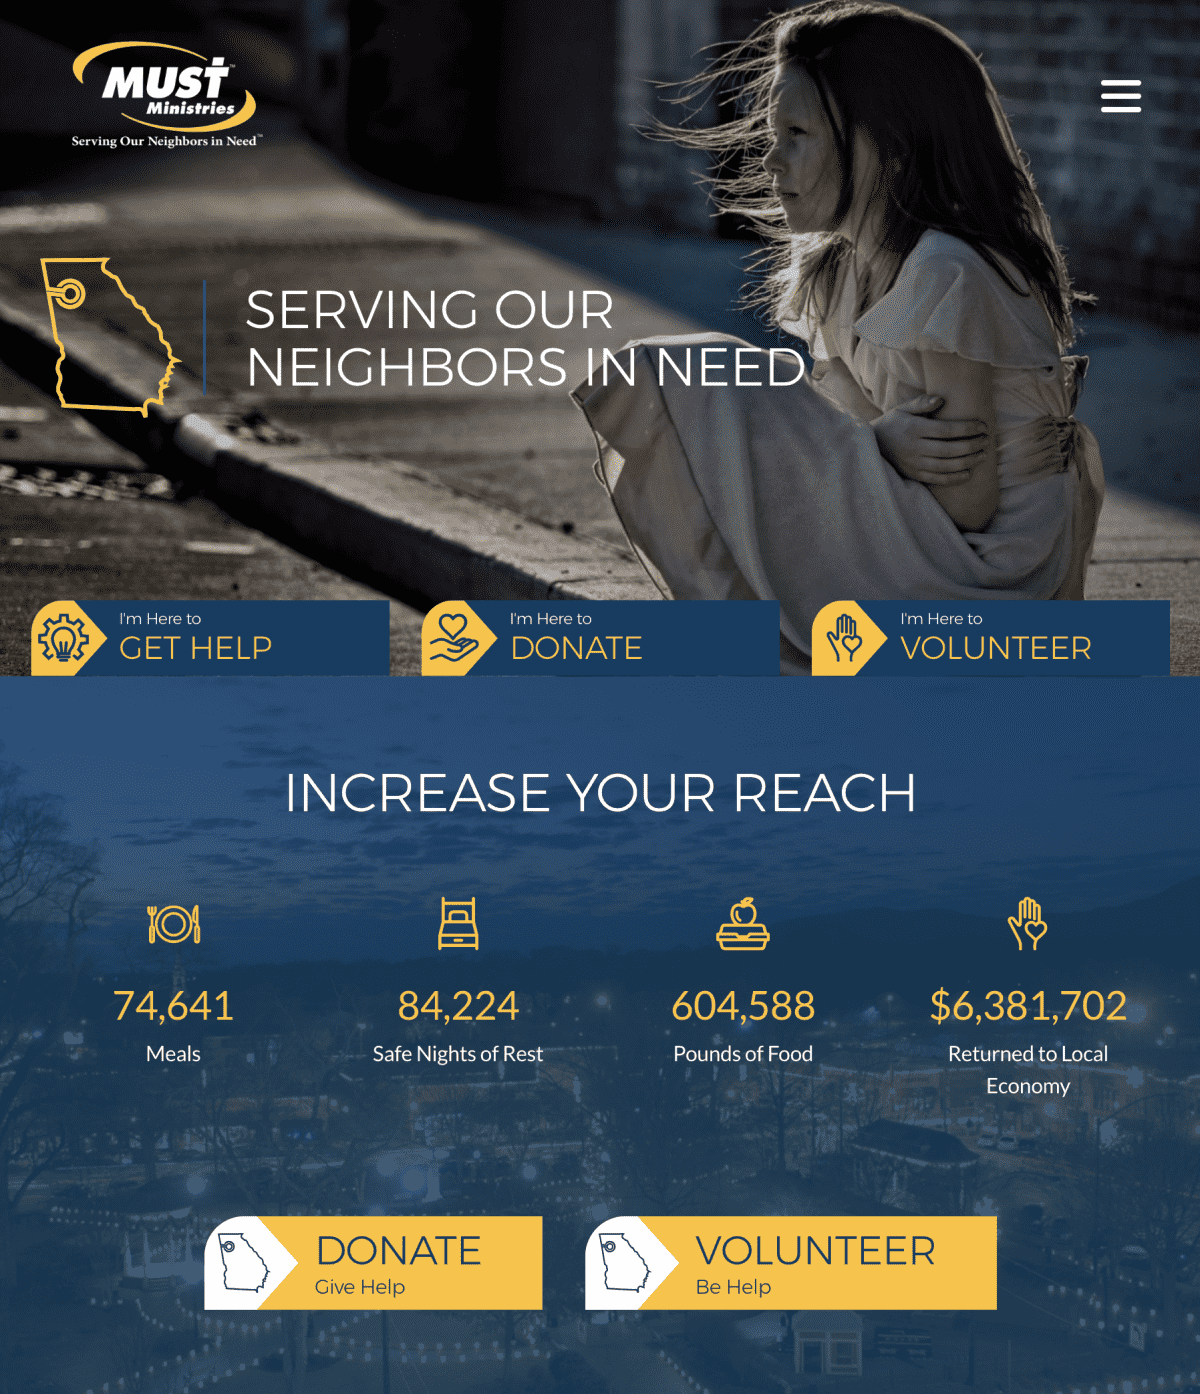 Image of website for MUST Ministries